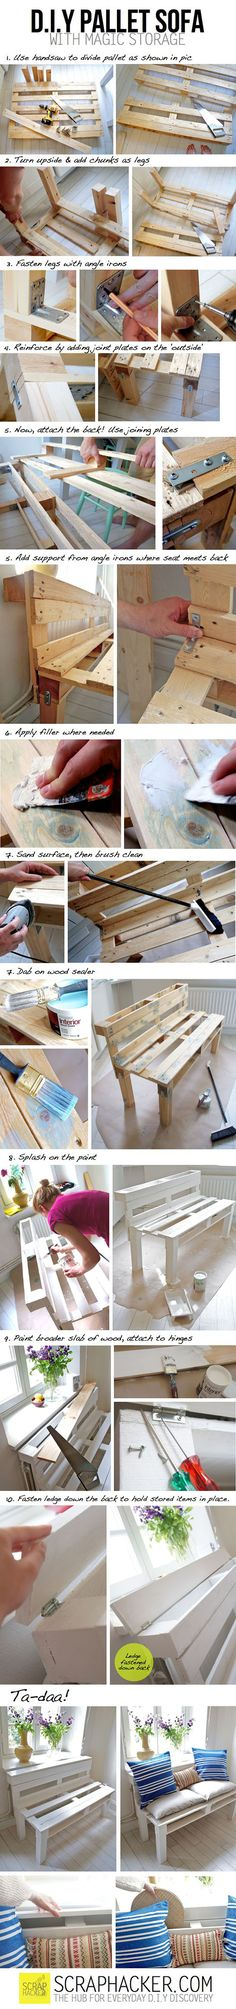 Diy Pallet Sofa | DIY & Crafts